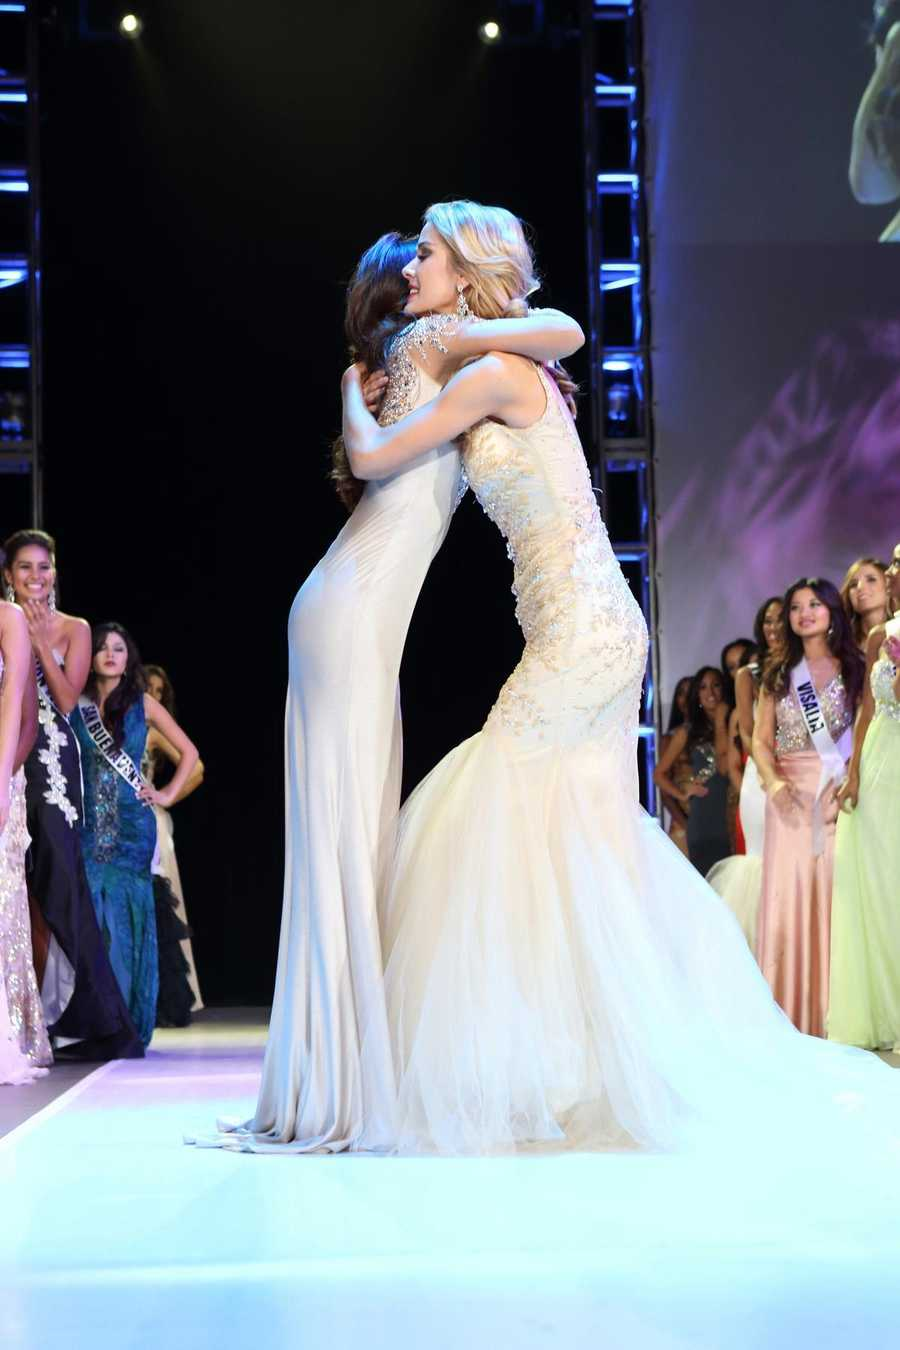 Miss Greater San Diego Mabelynn Capeluj, left, gets a hug from the runner-up after the judges announced that Capeluj is Miss California USA 2013.